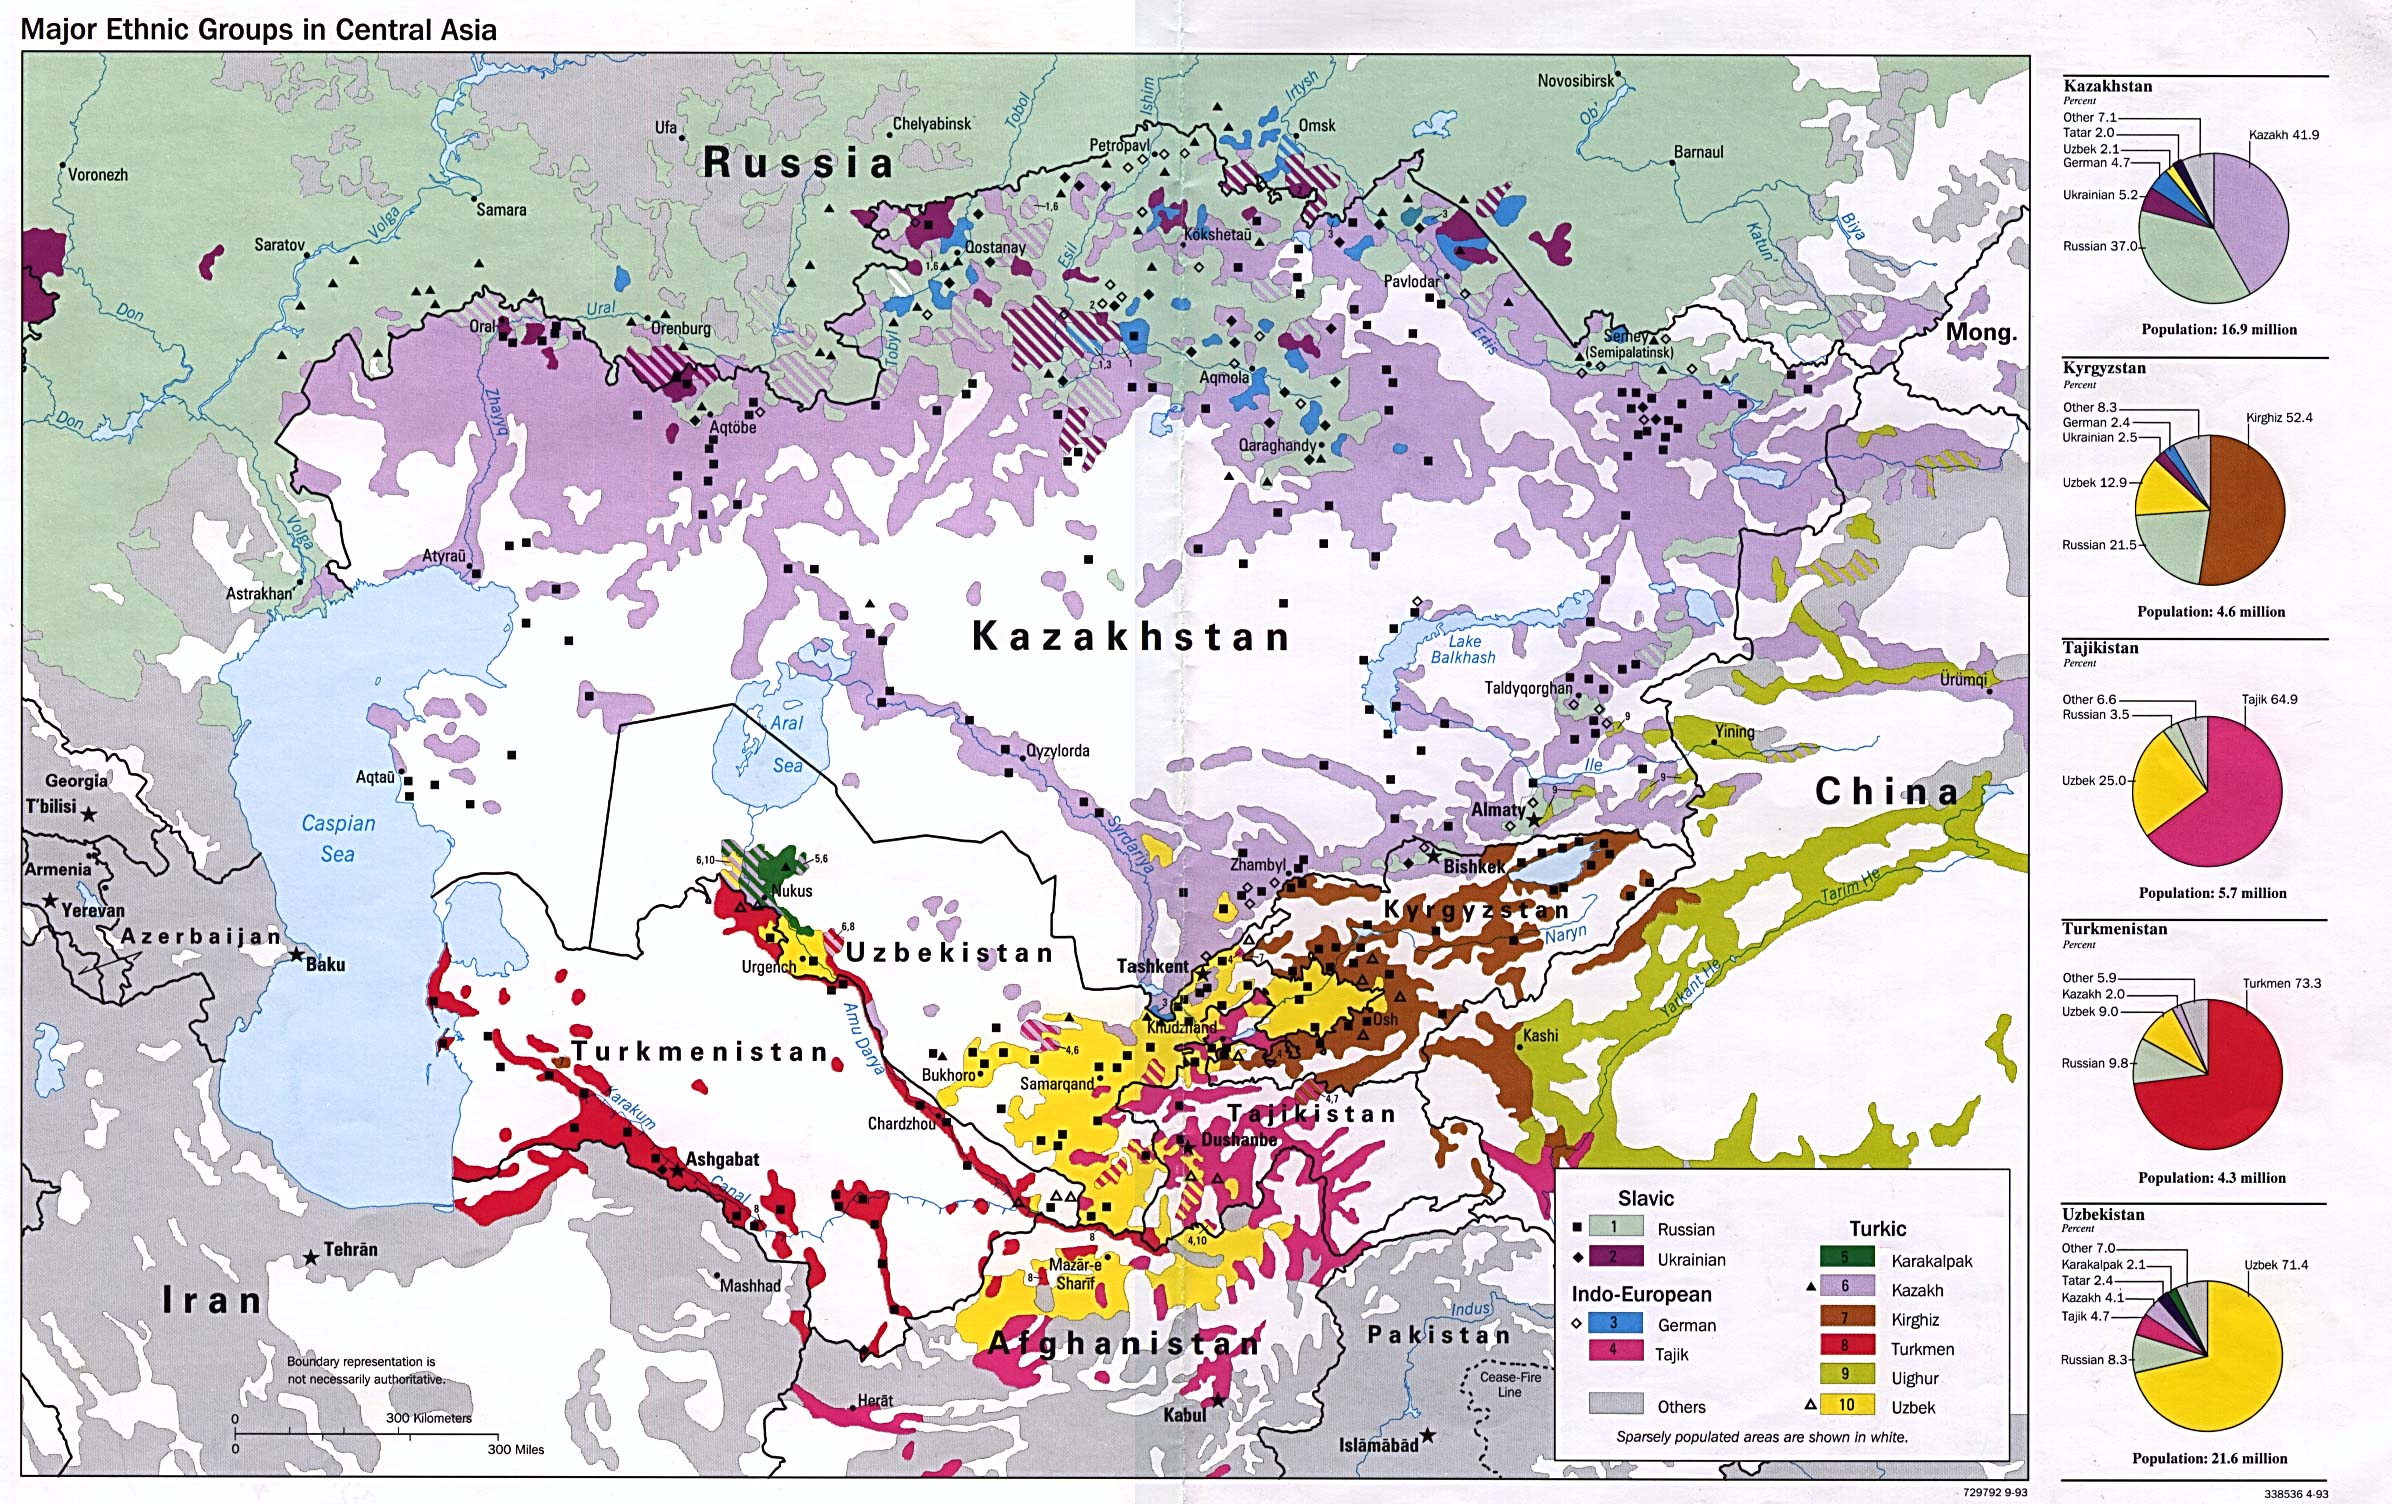 Map of Major Ethnic Groups in